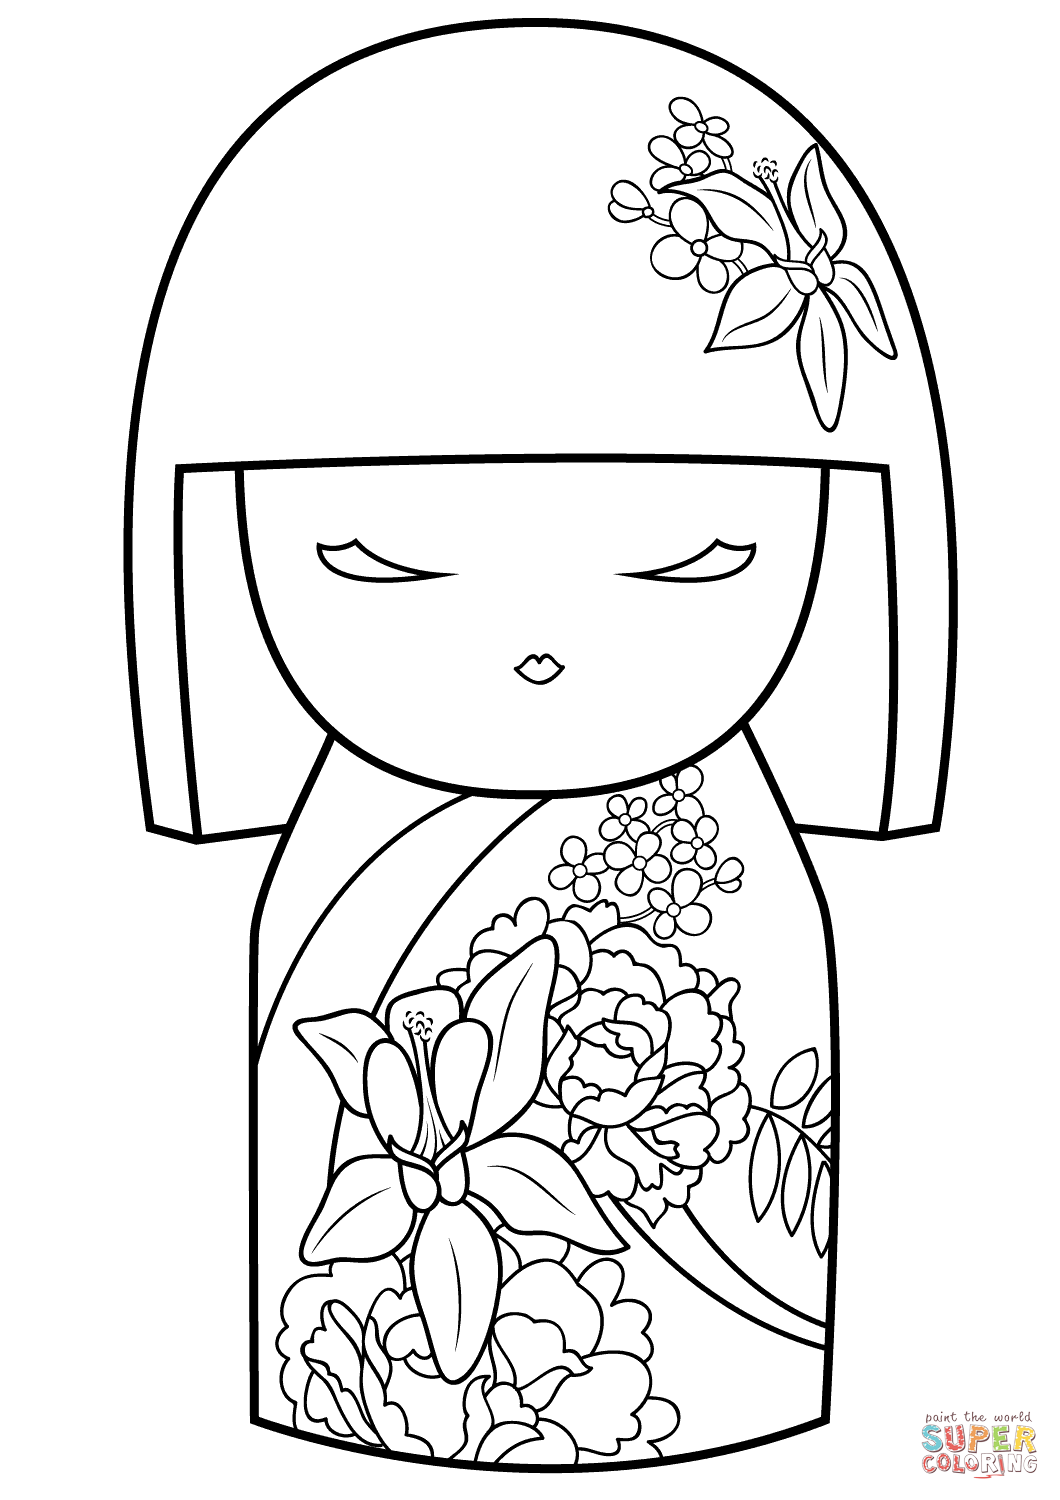 kokeshi dolls coloring pages kokeshi dolls coloring page free printable coloring pages coloring pages kokeshi dolls